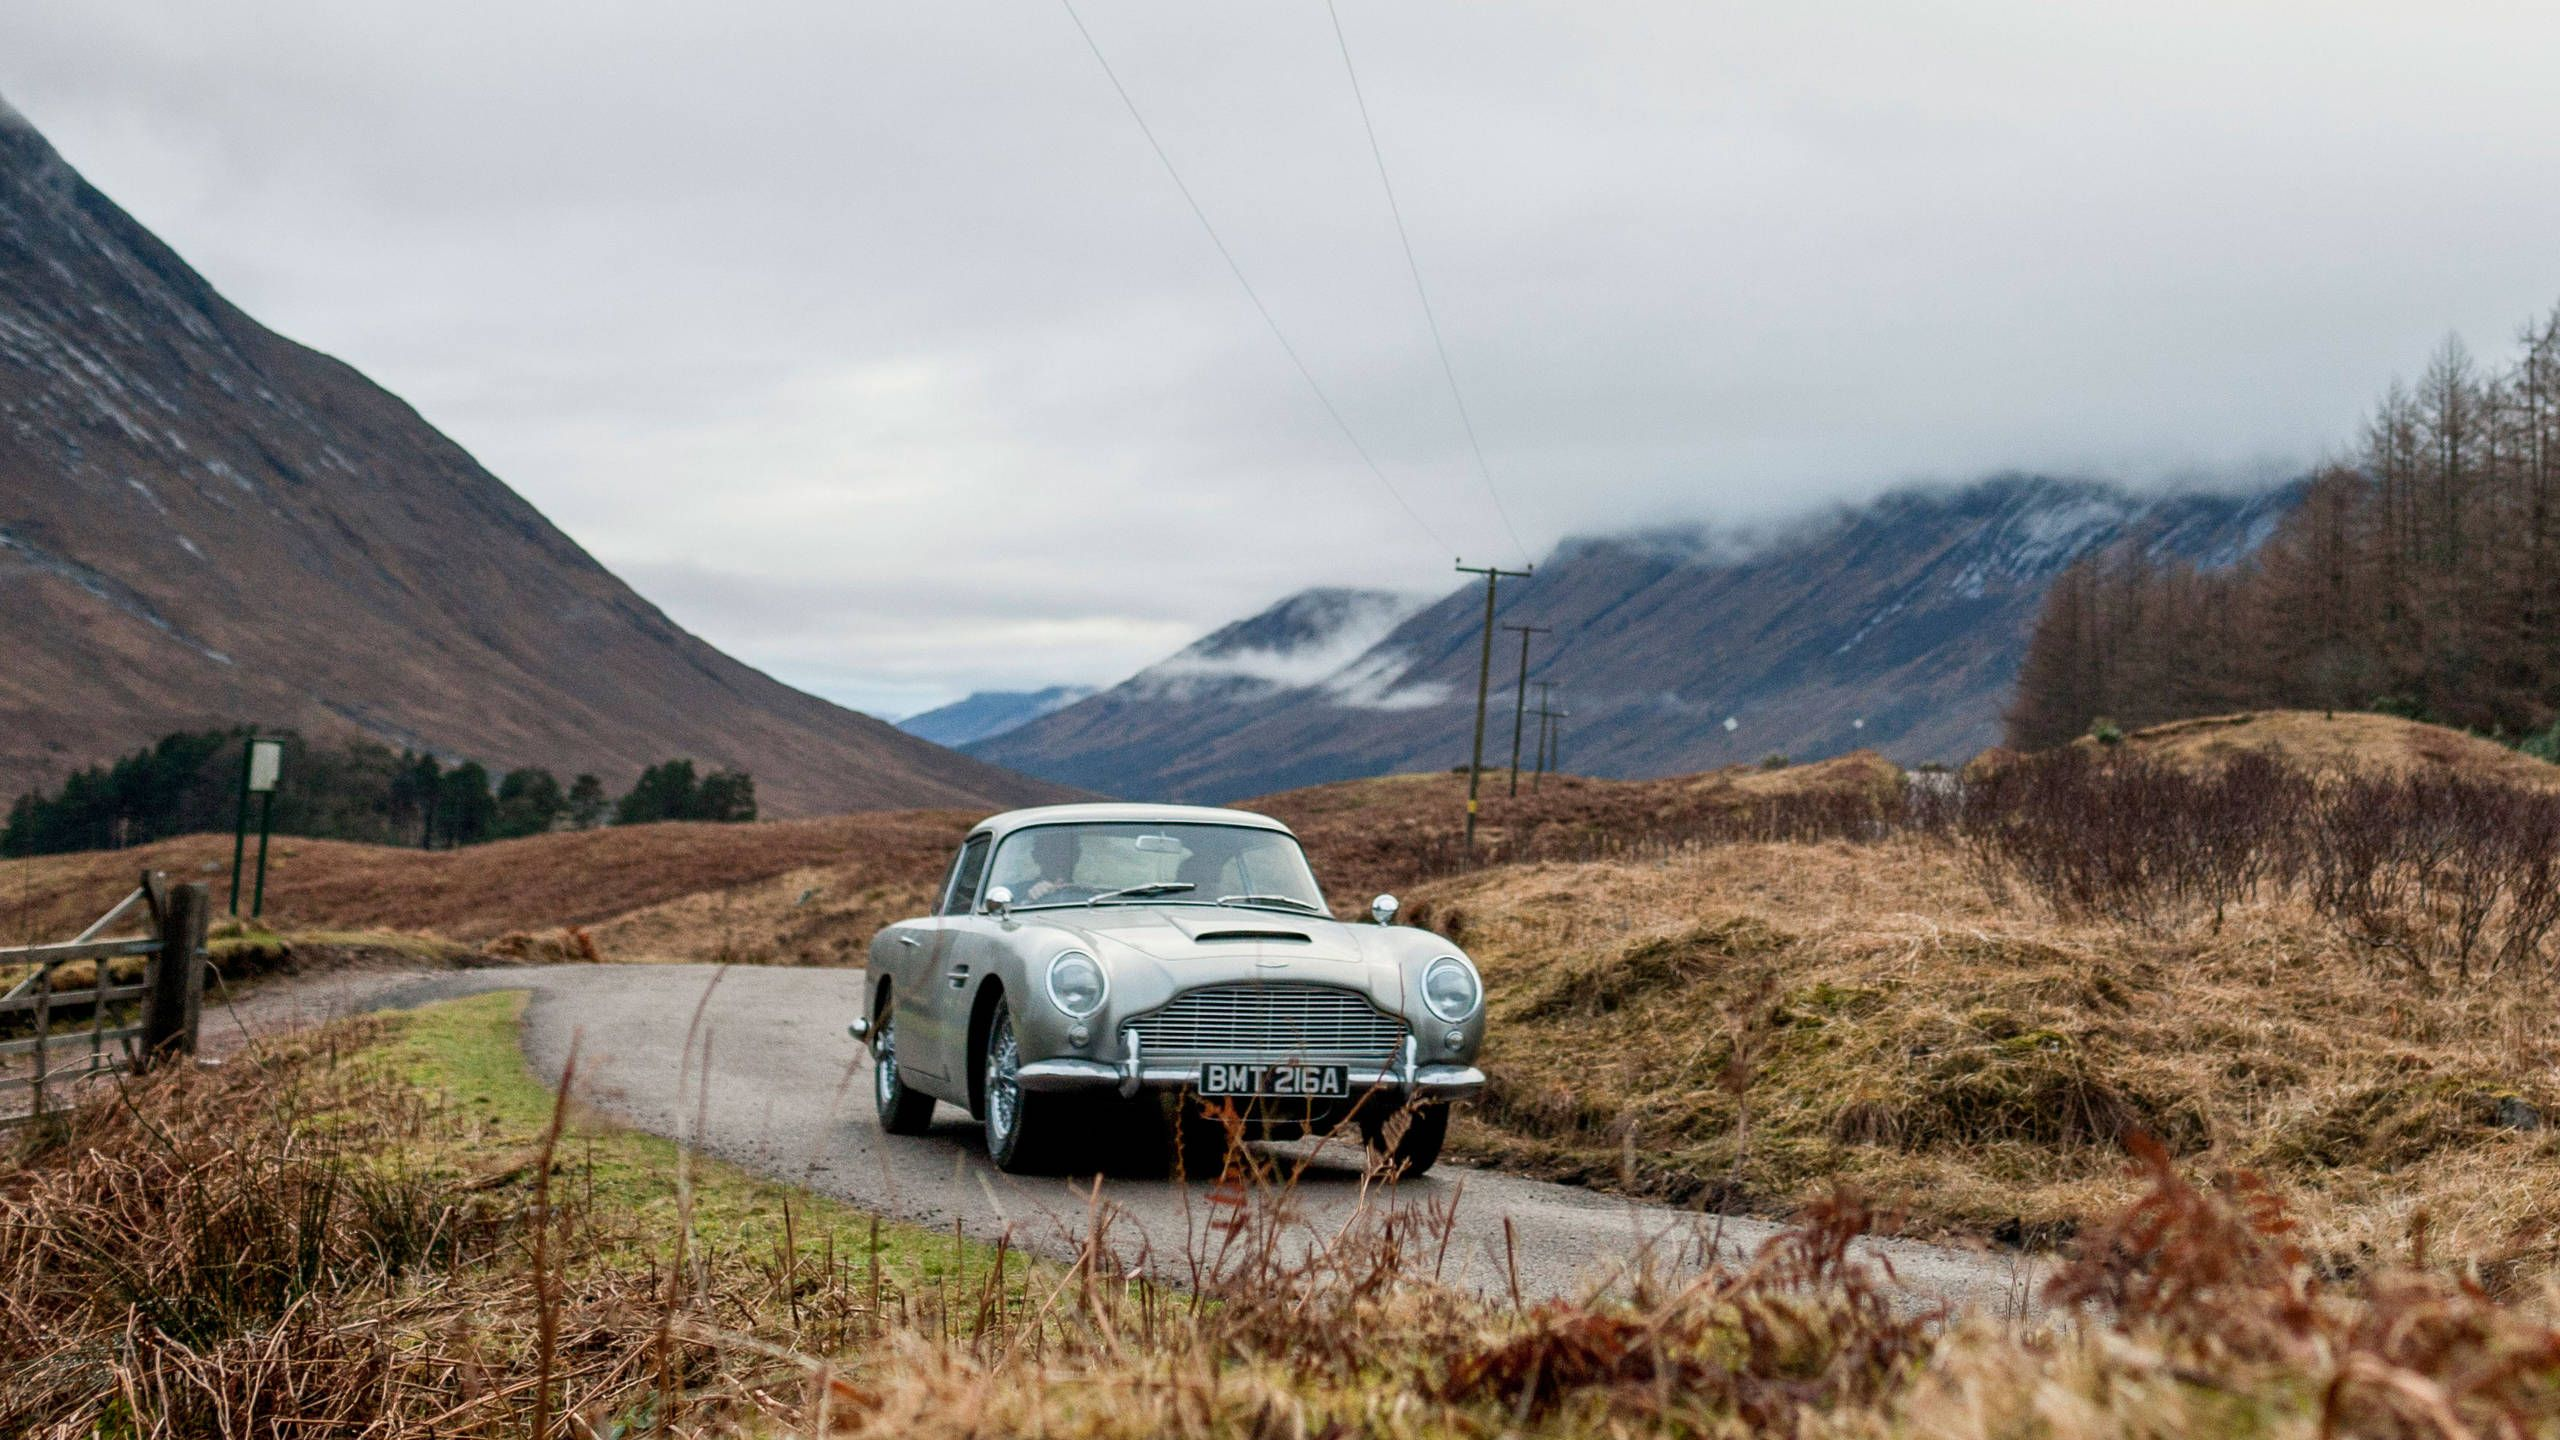 There S Just 1 Small Problem With Aston Martin S Upcoming Run Of Db5 Goldfinger Continuation Cars